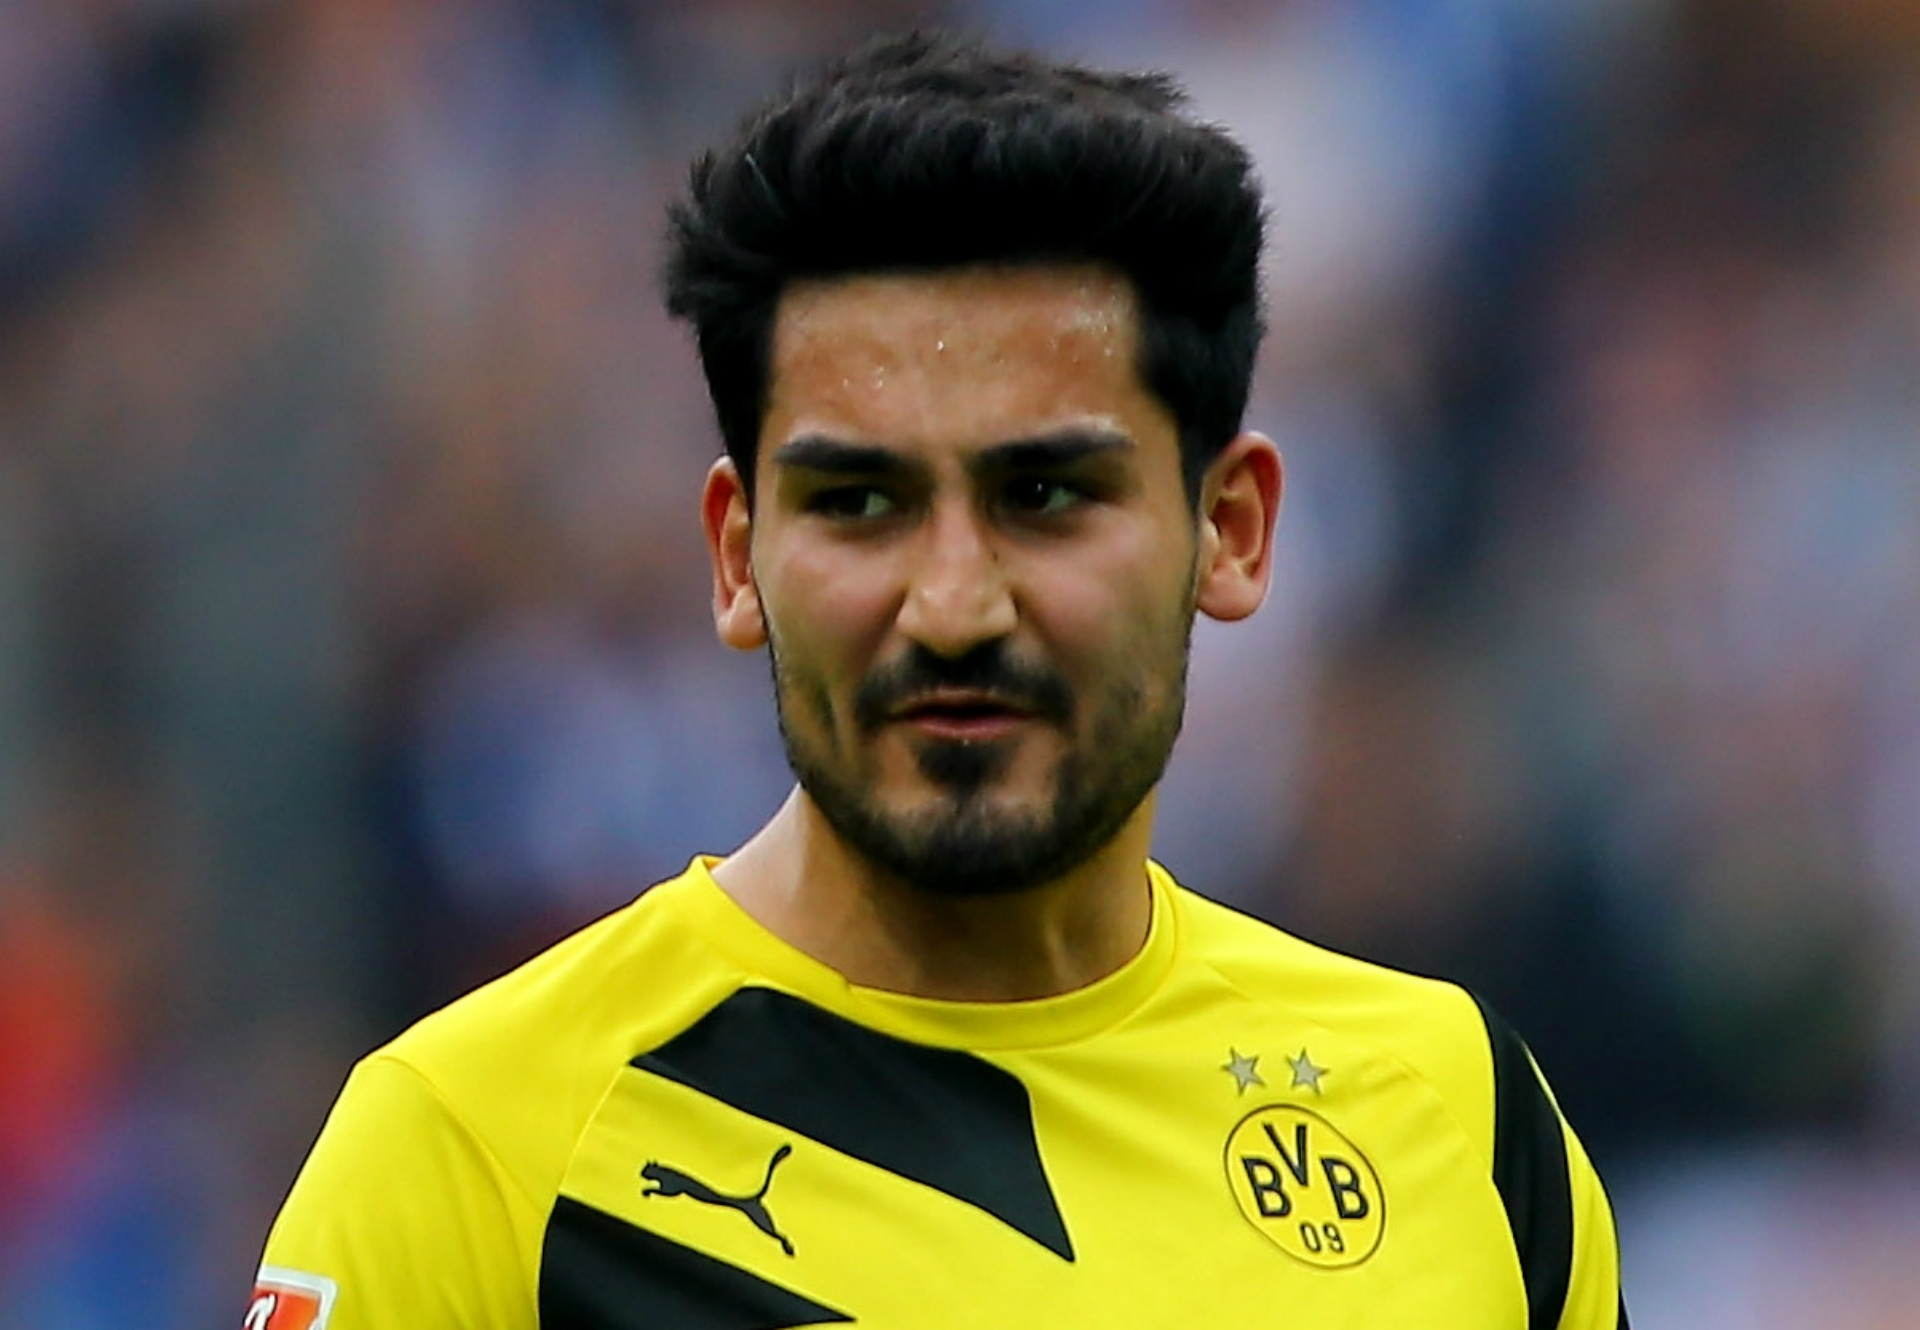 Man City sign Ilkay Gundogan from Borussia Dortmund